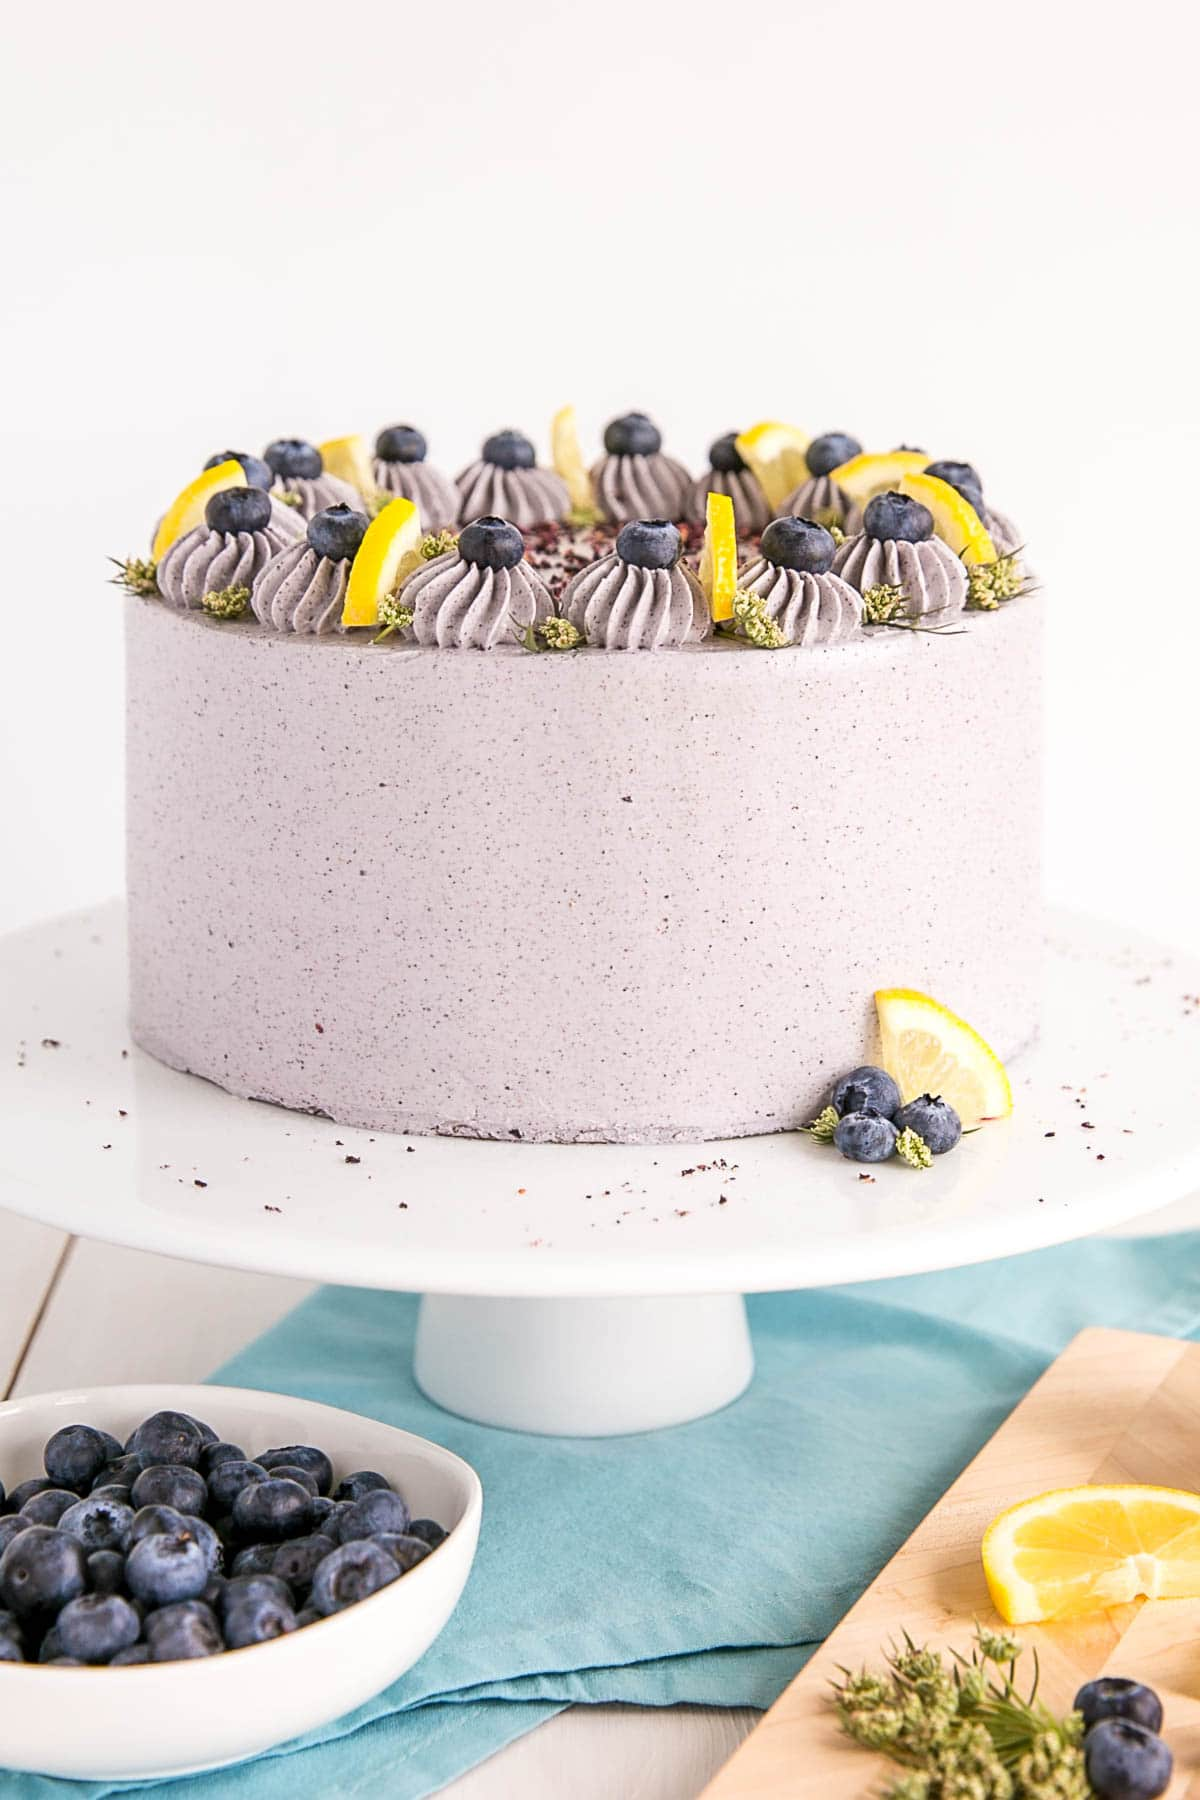 Lemon blueberry cake on a white cake stand decorated with lemon wedges and blueberries.